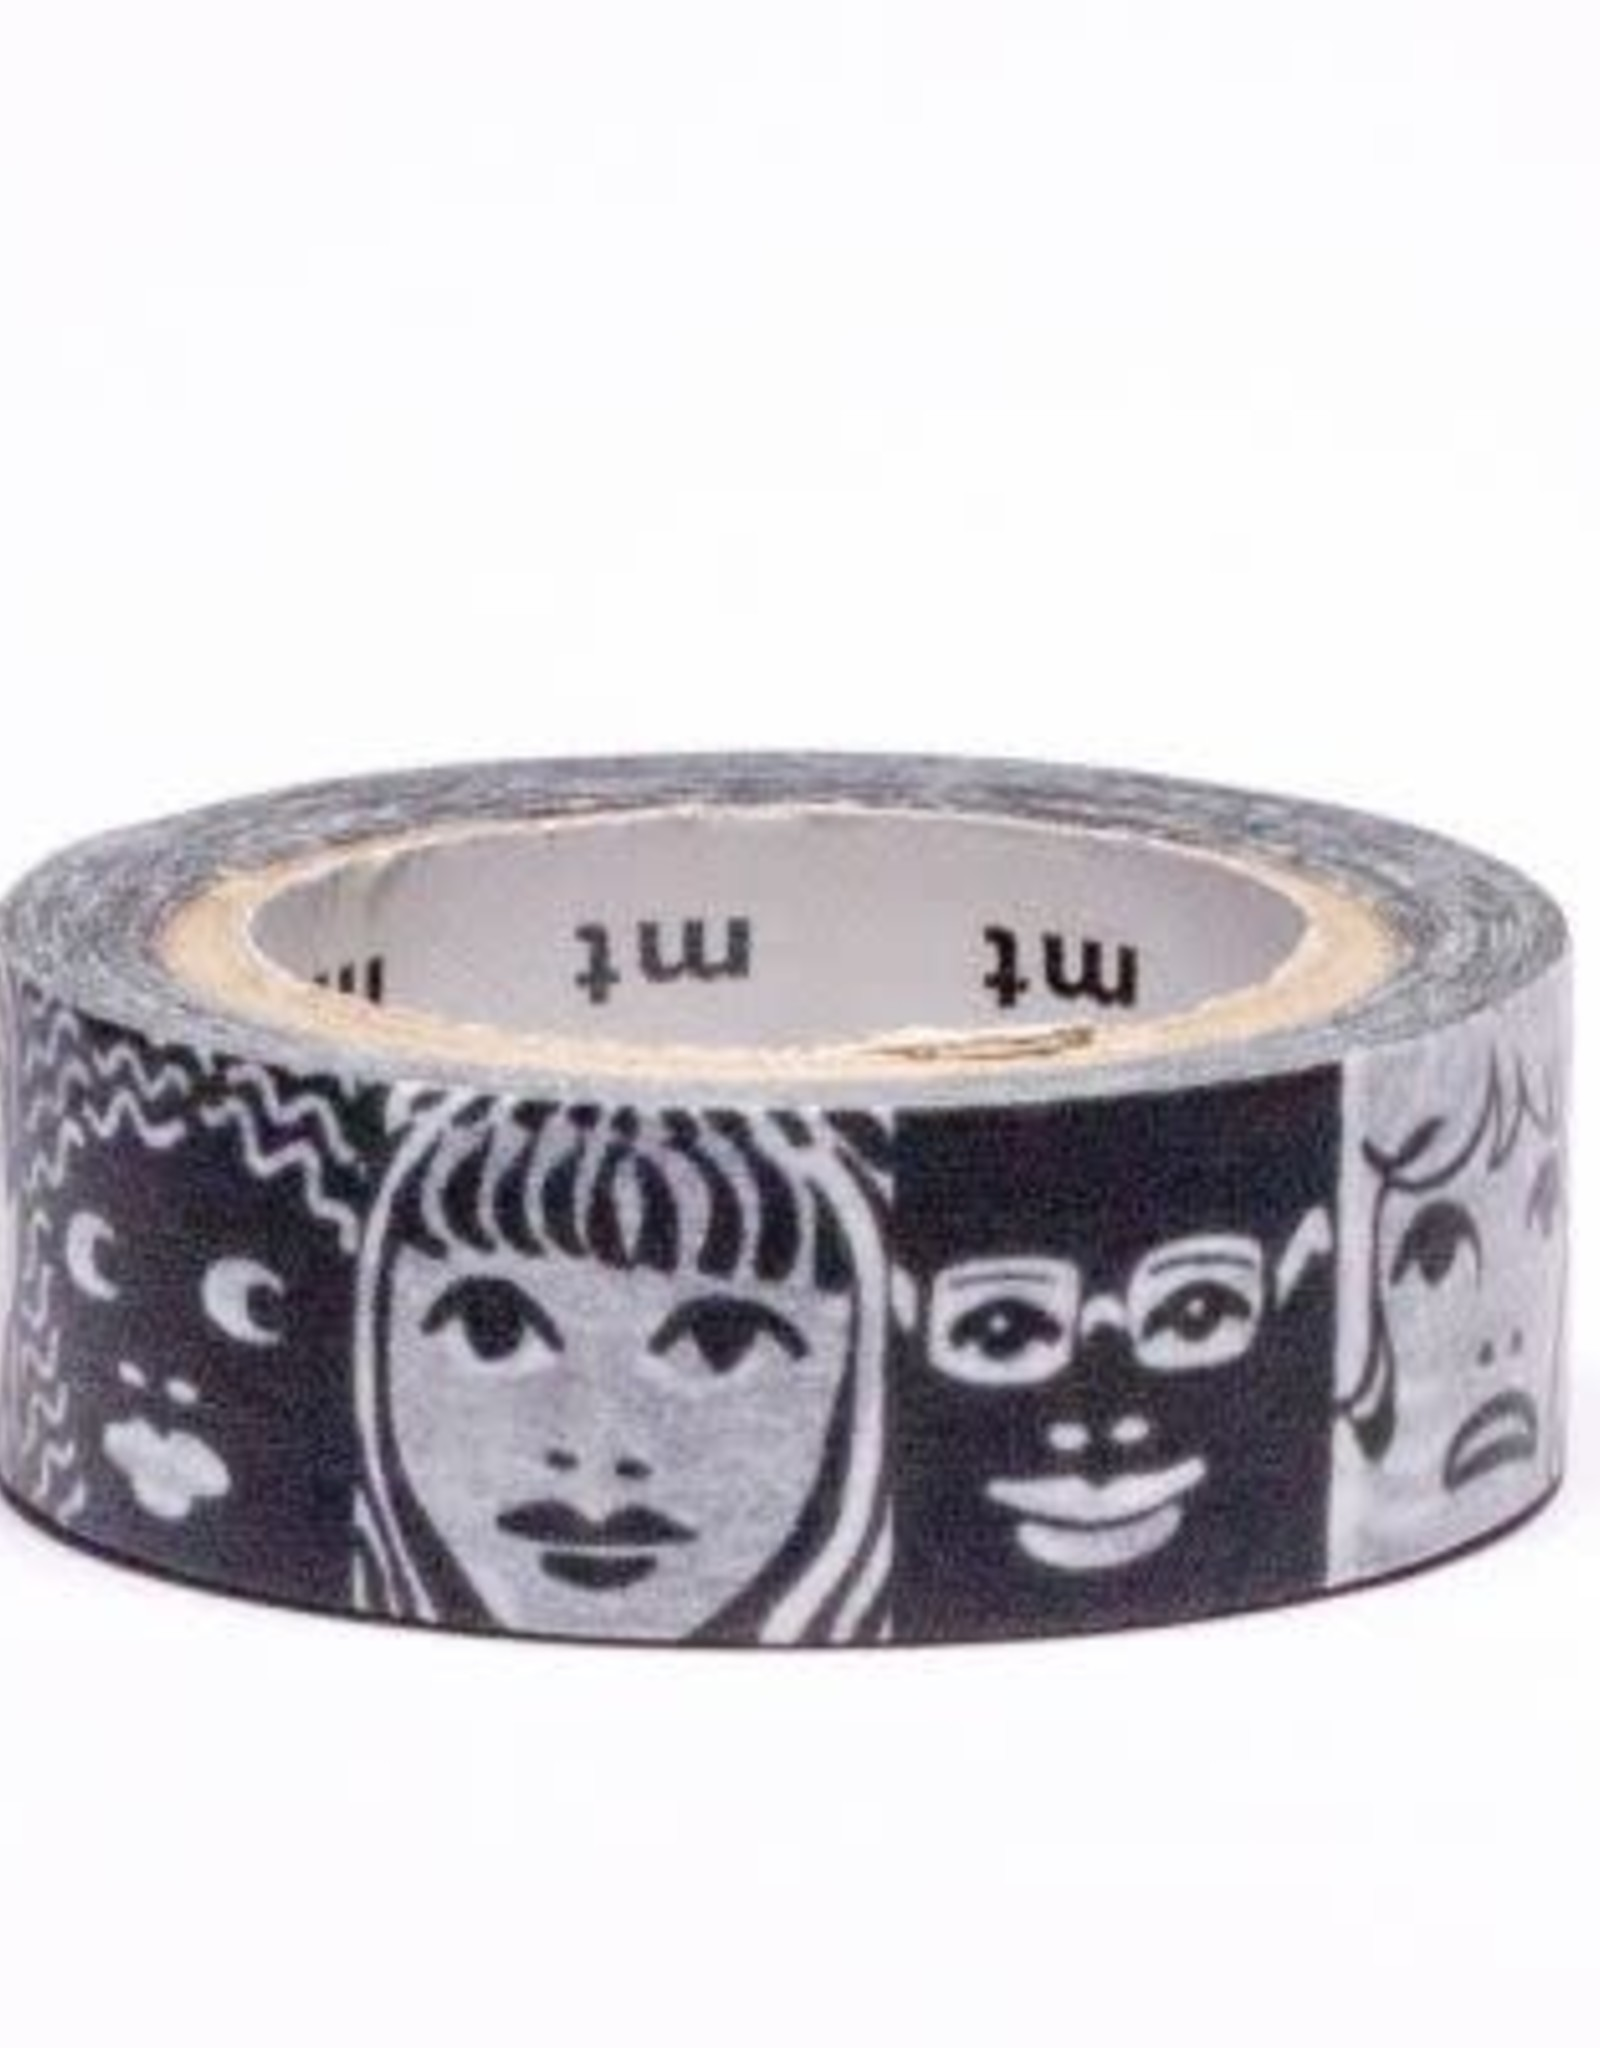 Black & White Faces Washi Tape